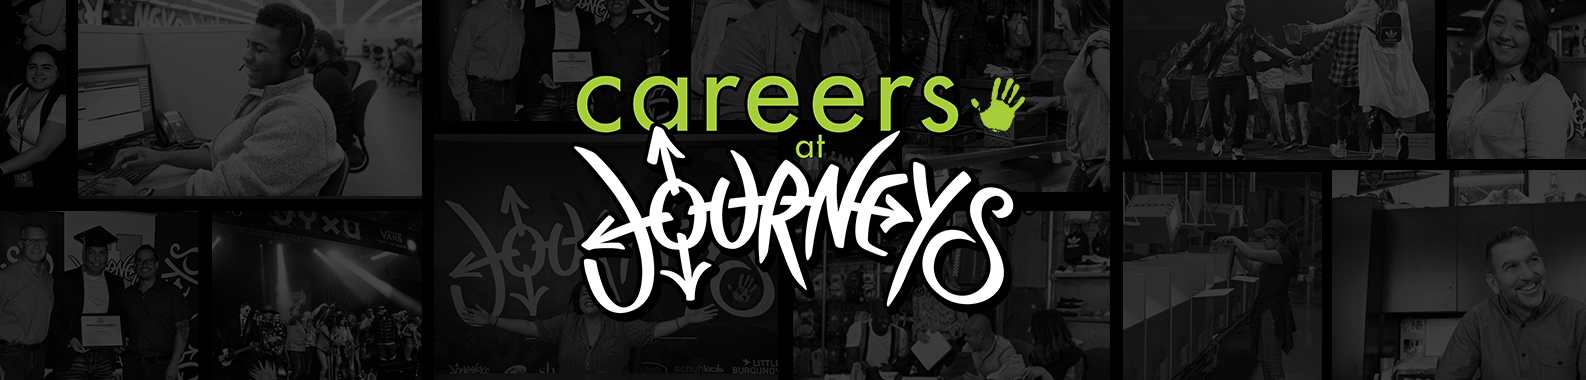 Journeys Careers